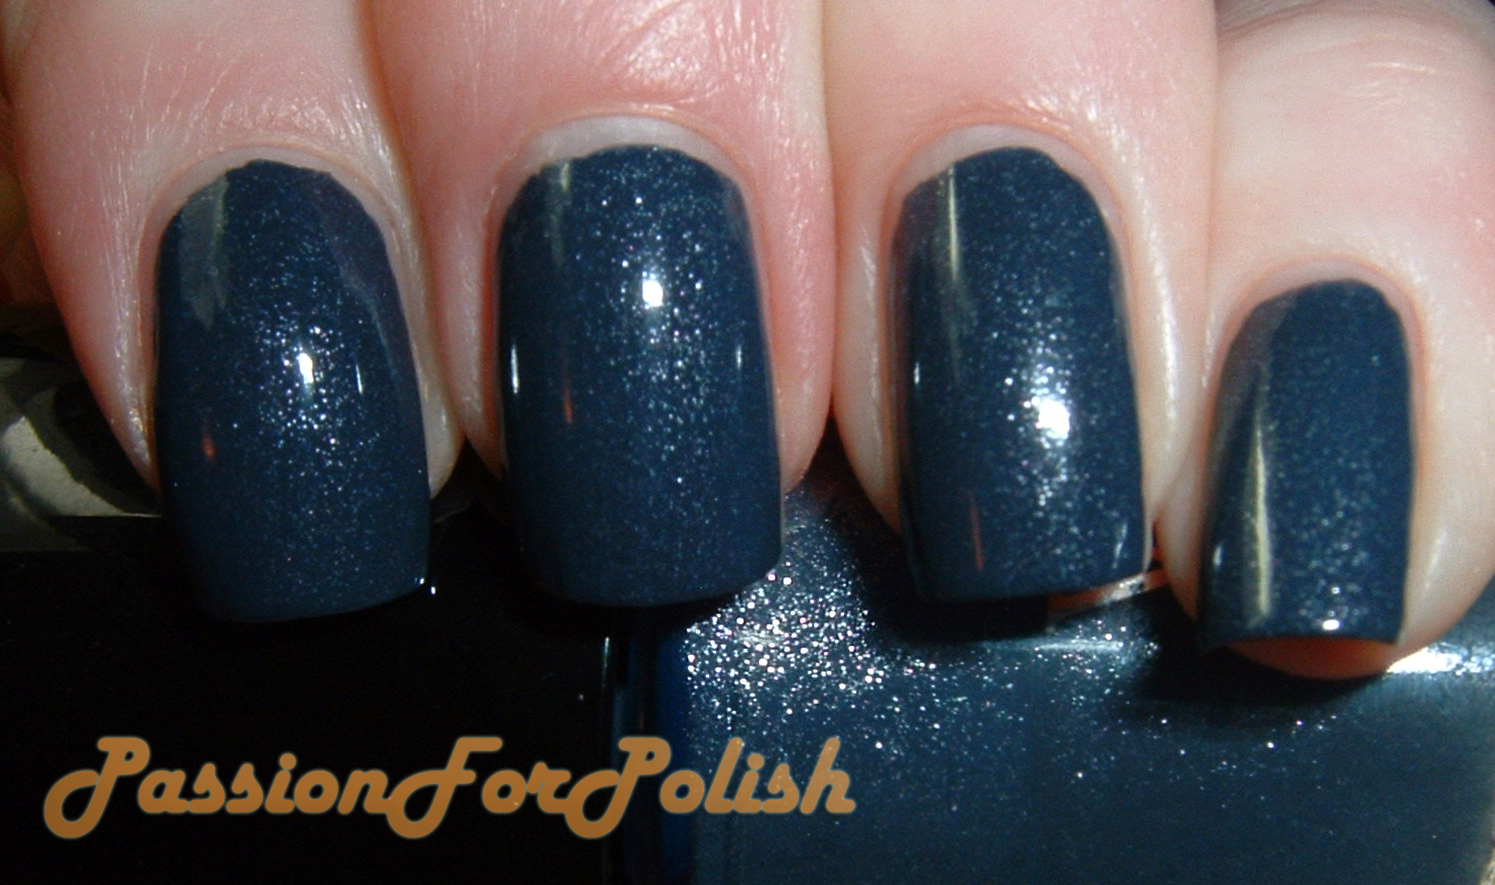 PassionForPolish: Essence Vampire\'s Love Swatches